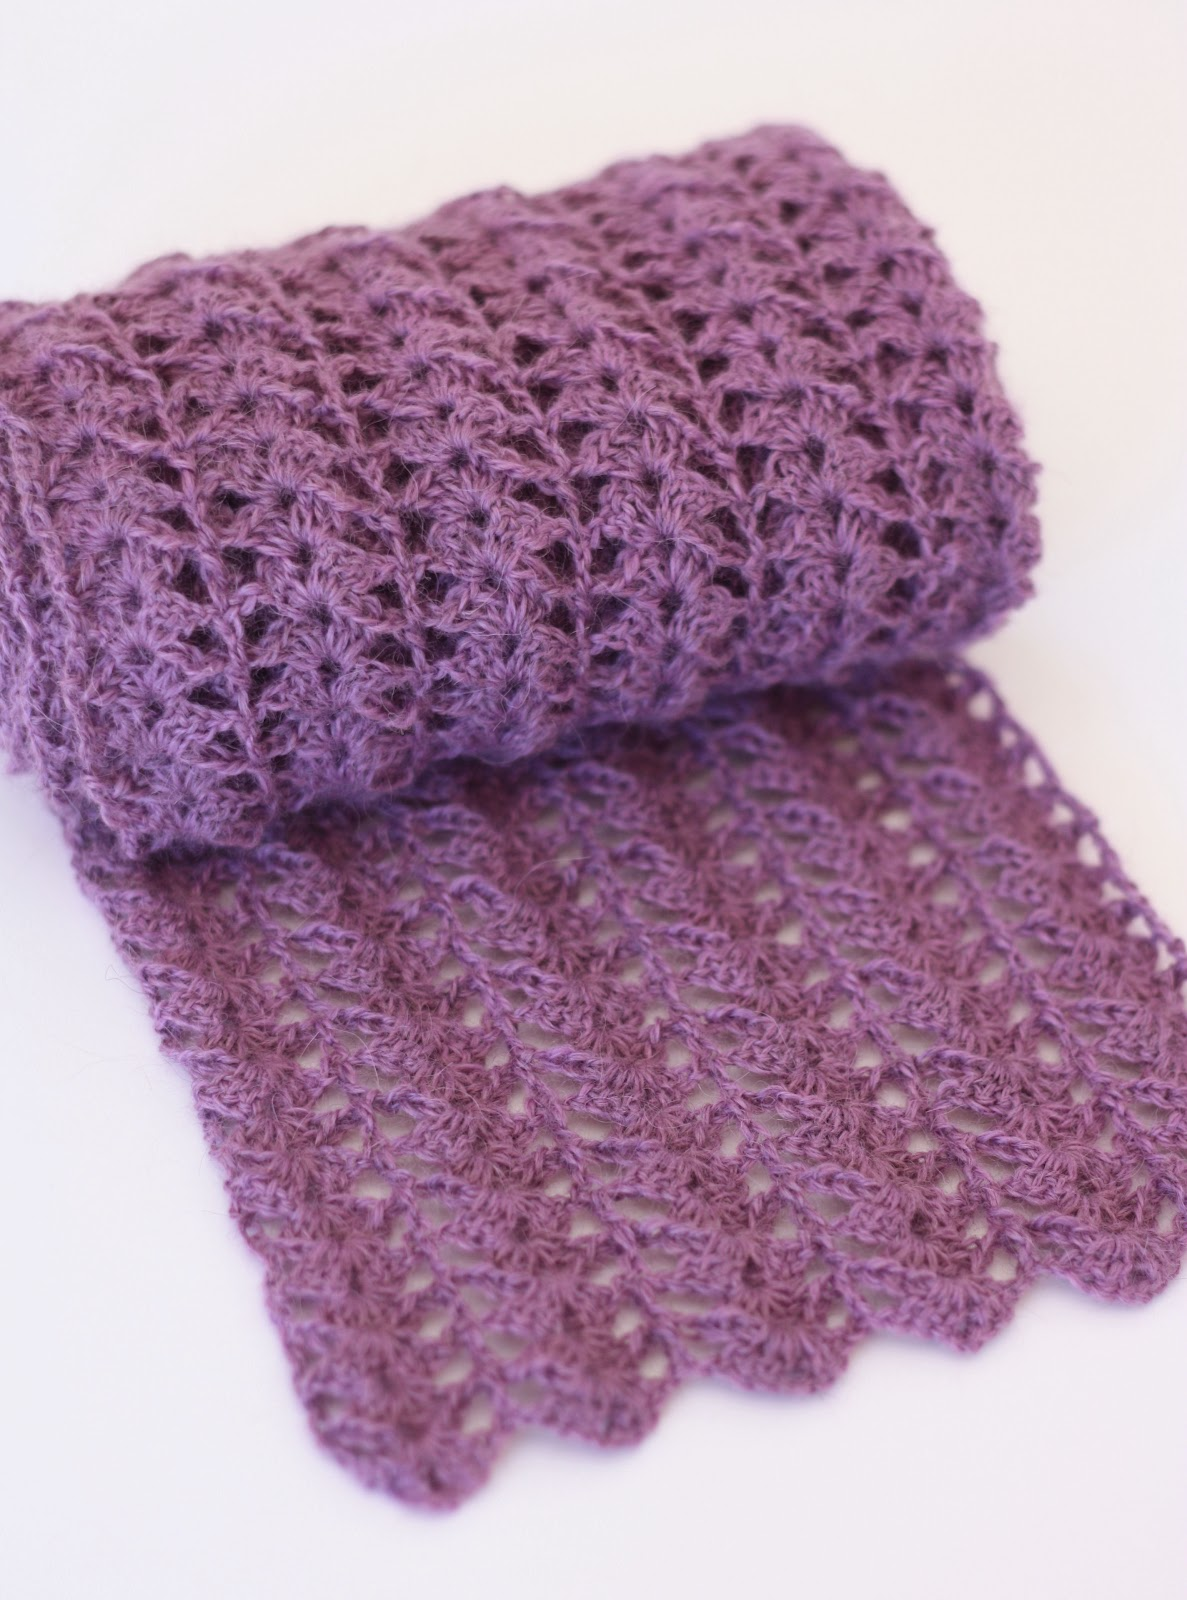 Crocheted Scarf A Spoonful Of Sugar